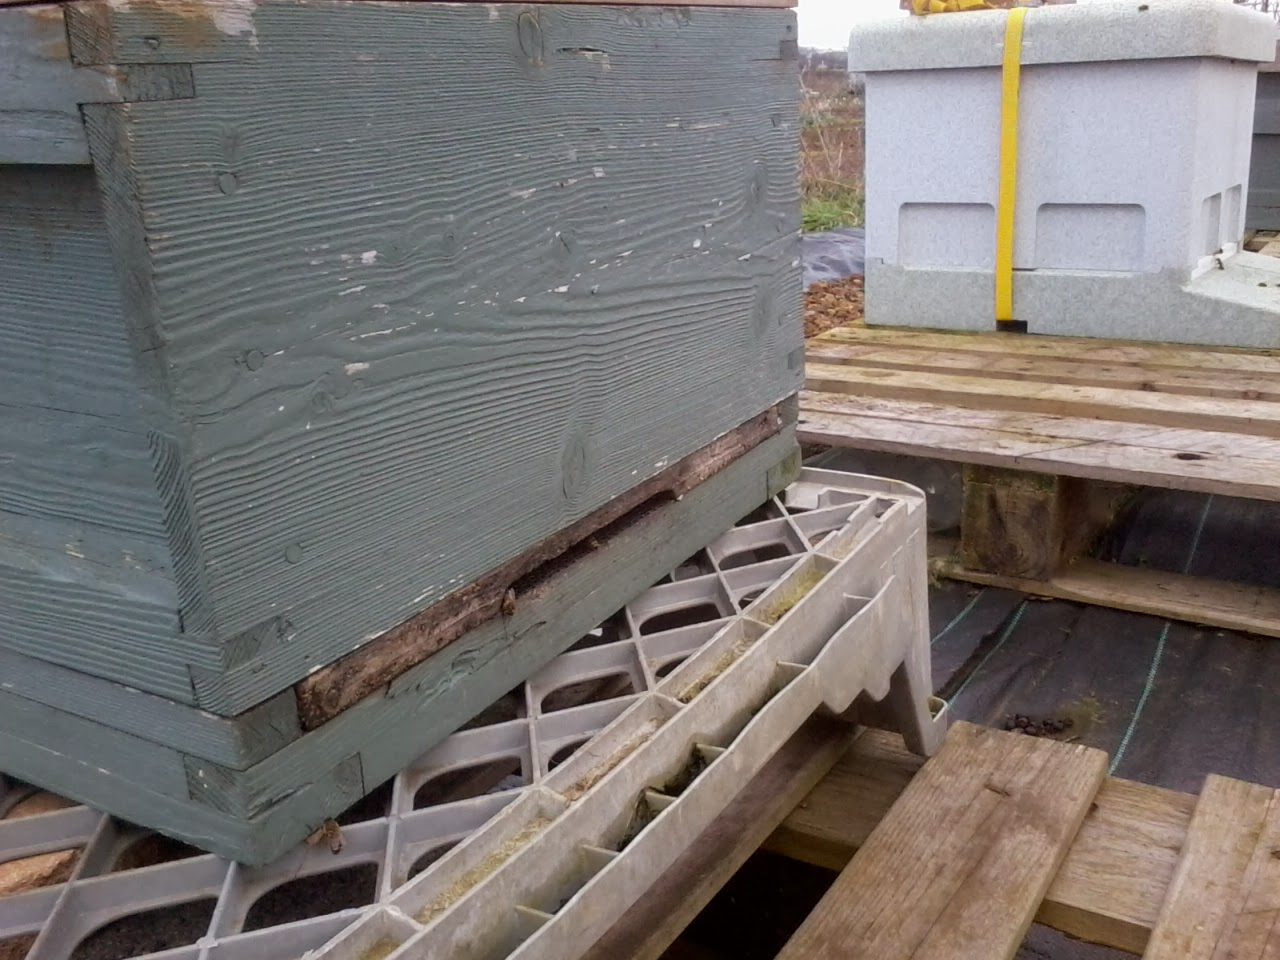 Not quite as enthusiastic as the other two hives about the sunshine.